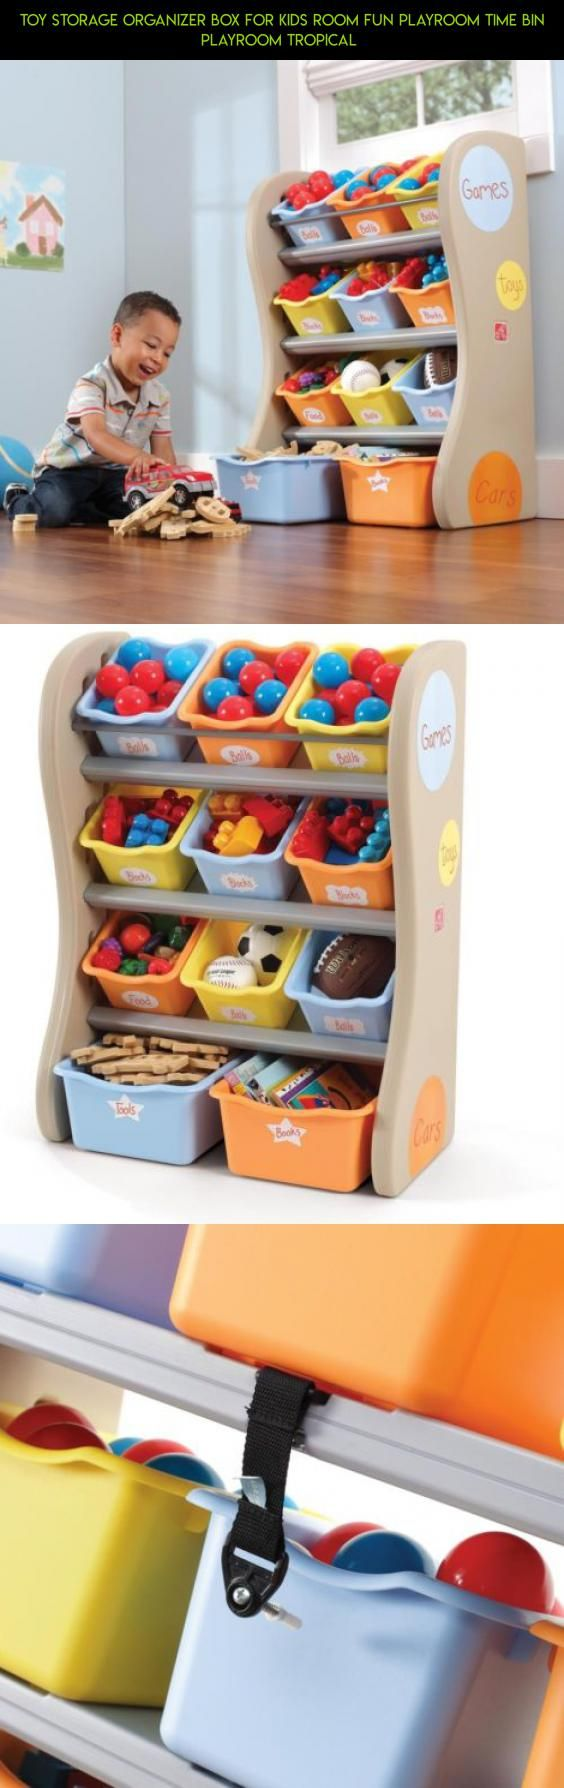 Toy Storage Organizer Box for Kids Room Fun Playroom Time Bin Playroom Tropical  #plans #fpv #technology #parts #drone #shopping #kit #storage #products #tech #camera #racing #for #gadgets #toys